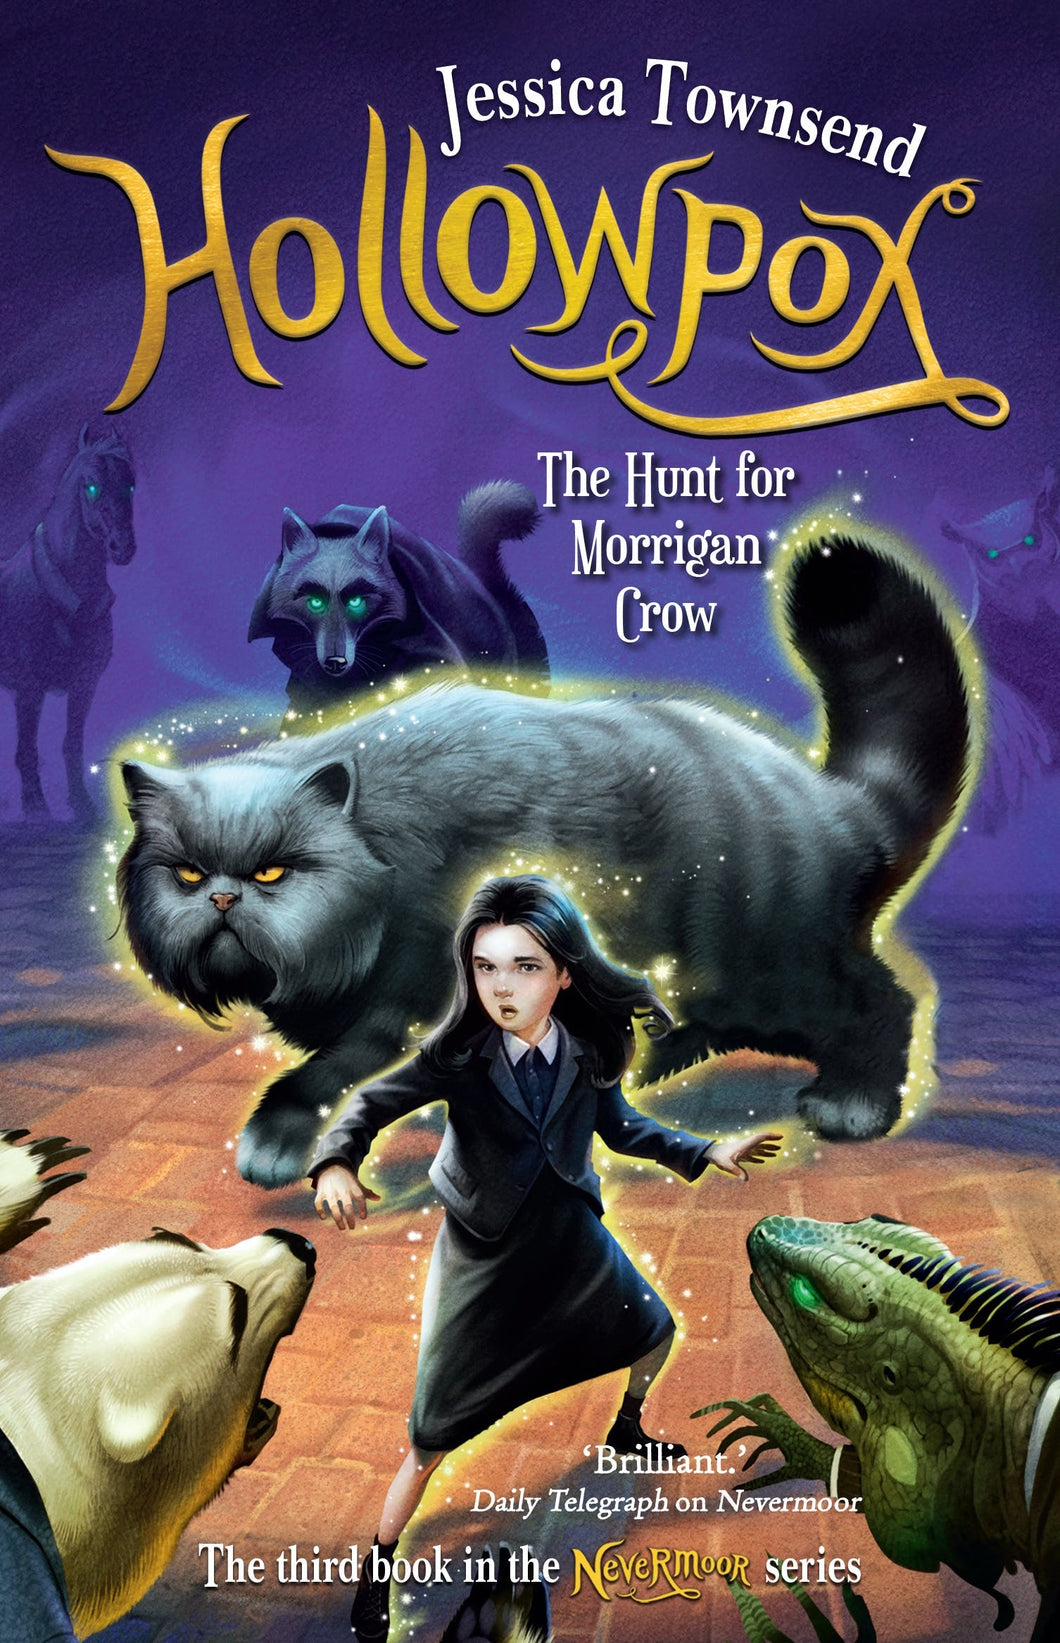 Nevermoor 3: Hollowpox, The Hunt for Morrigan Crow by Jessica Townsend